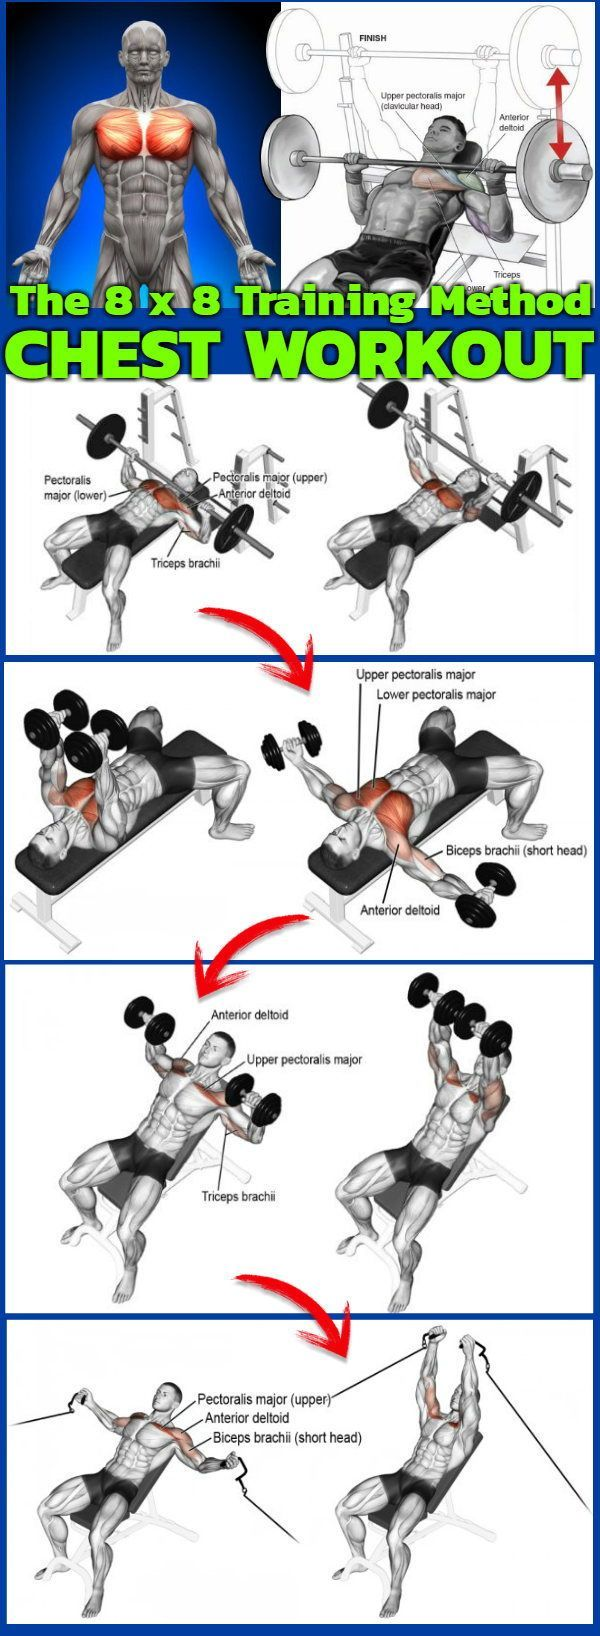 8 x 8 Method For Chest Training - Get Lean-Rid Fat - GymGuider.com